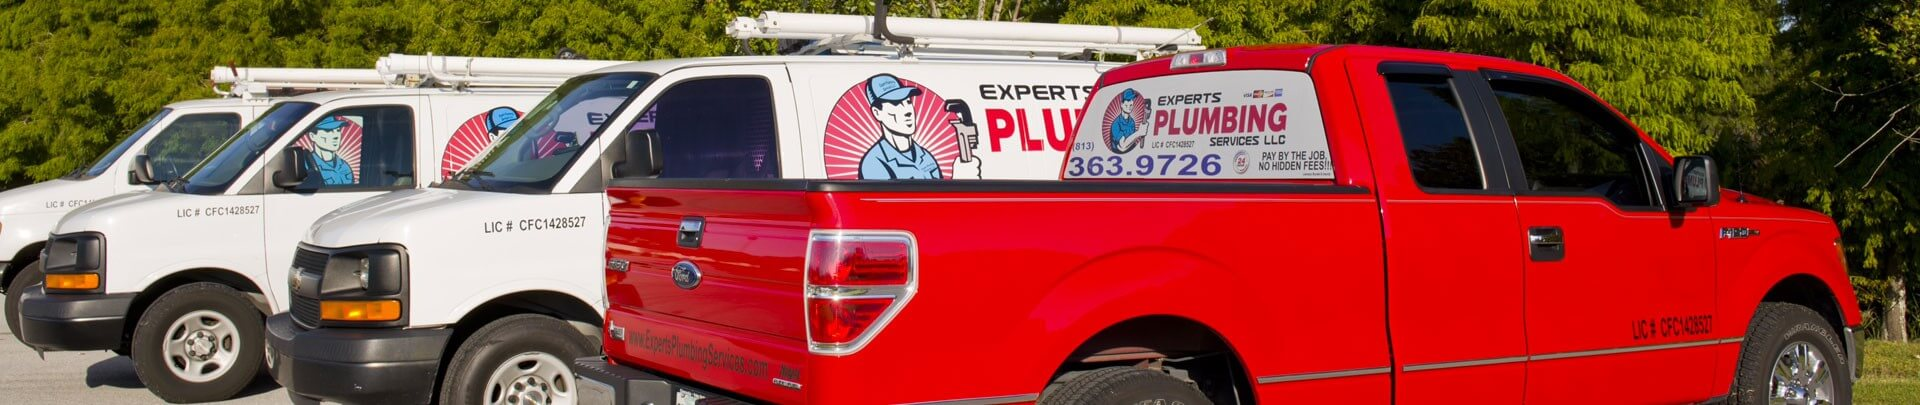 Experts Plumbing Services, LLC - In The News